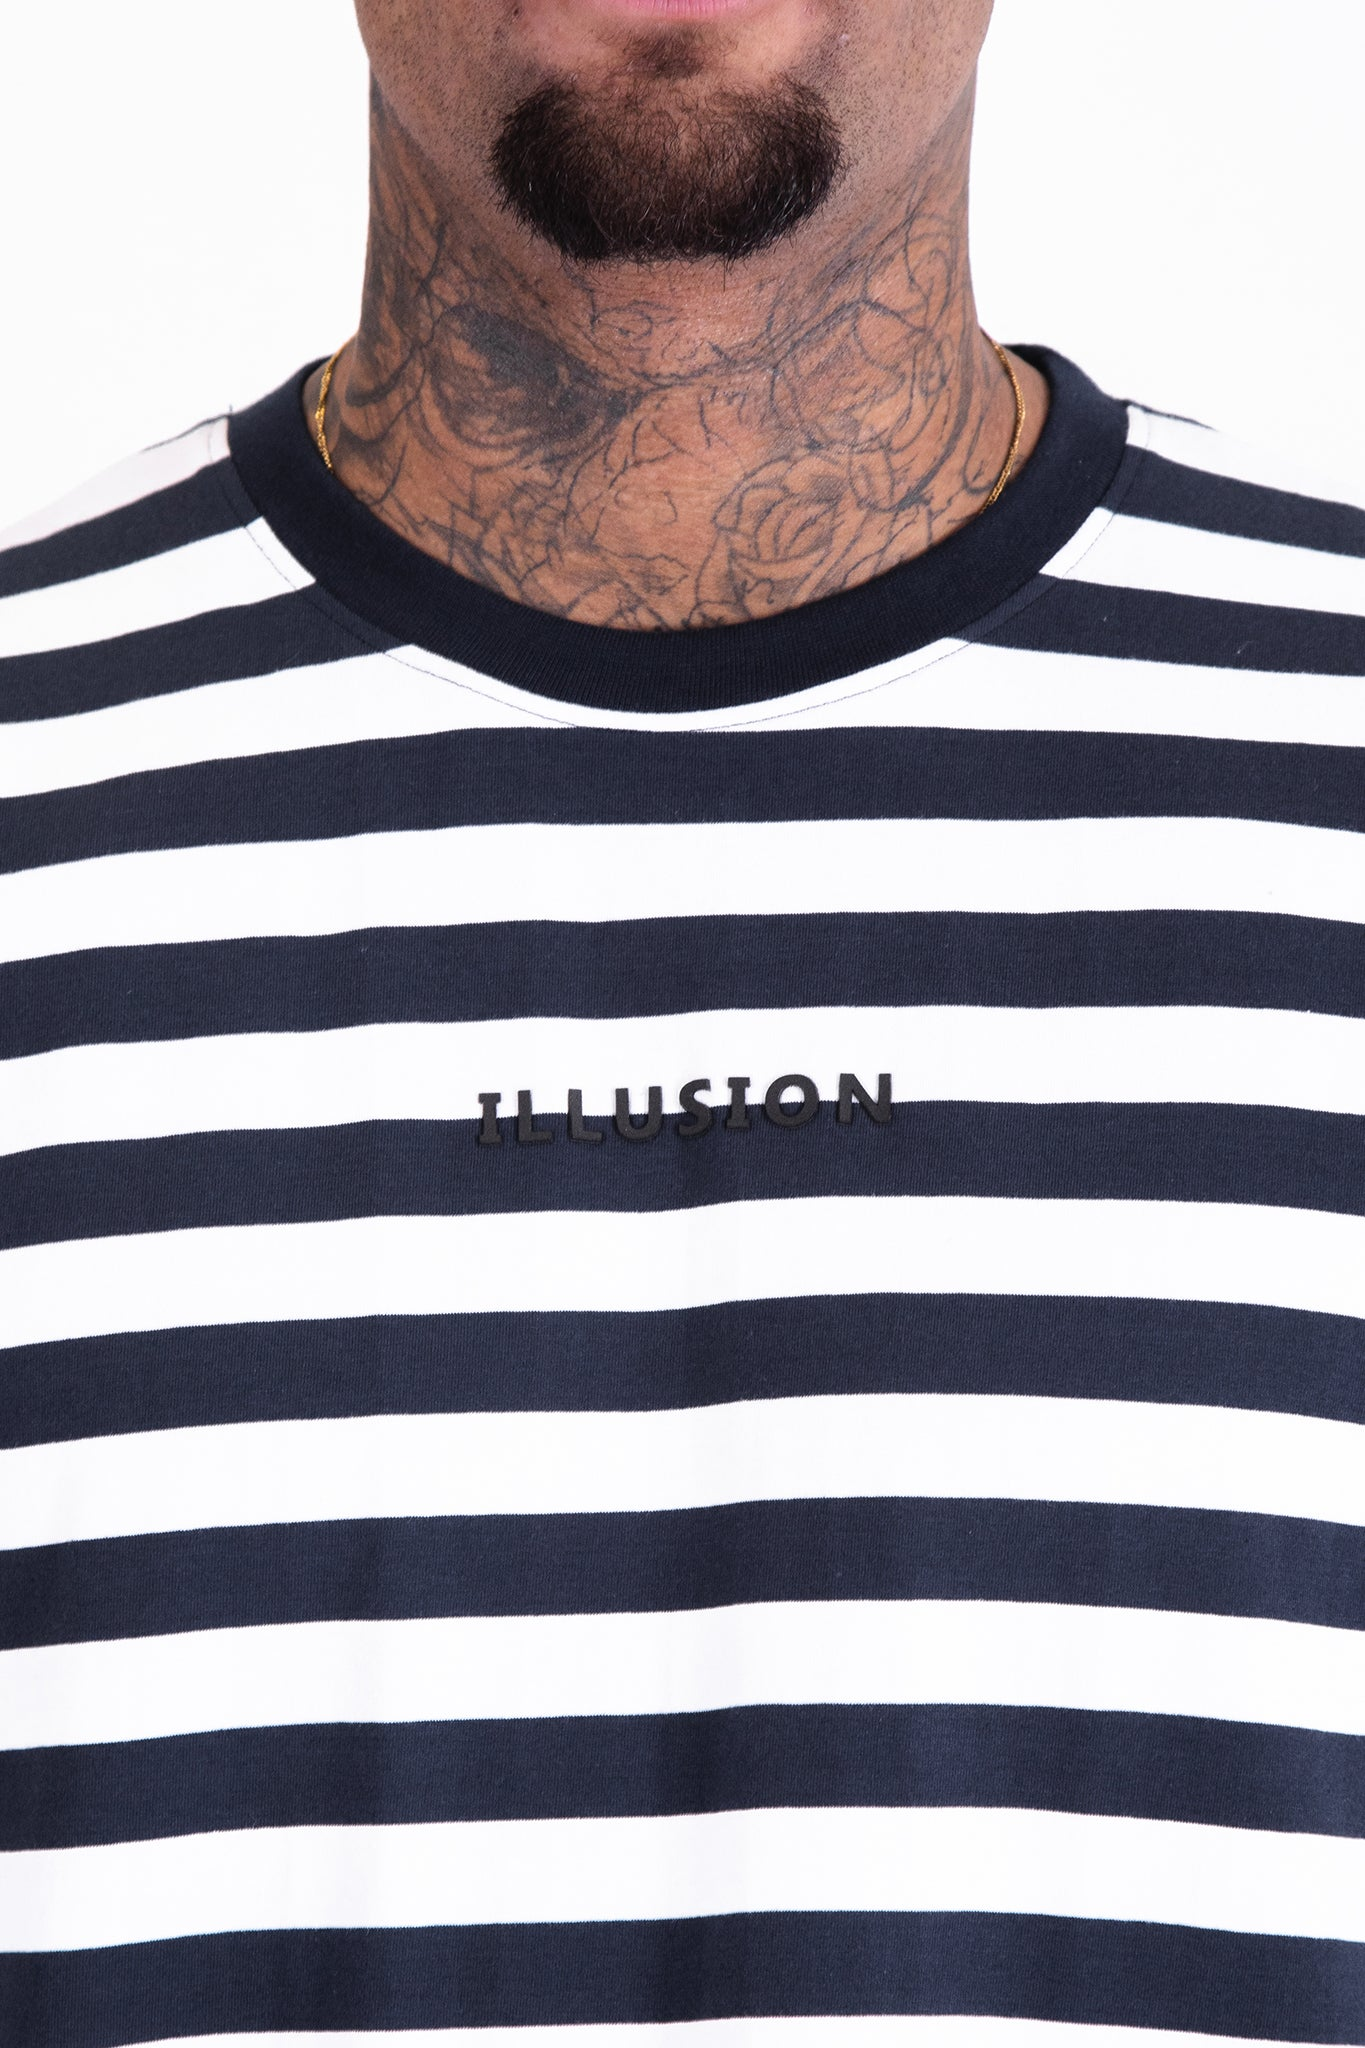 Striped Tee - Illusion Attire